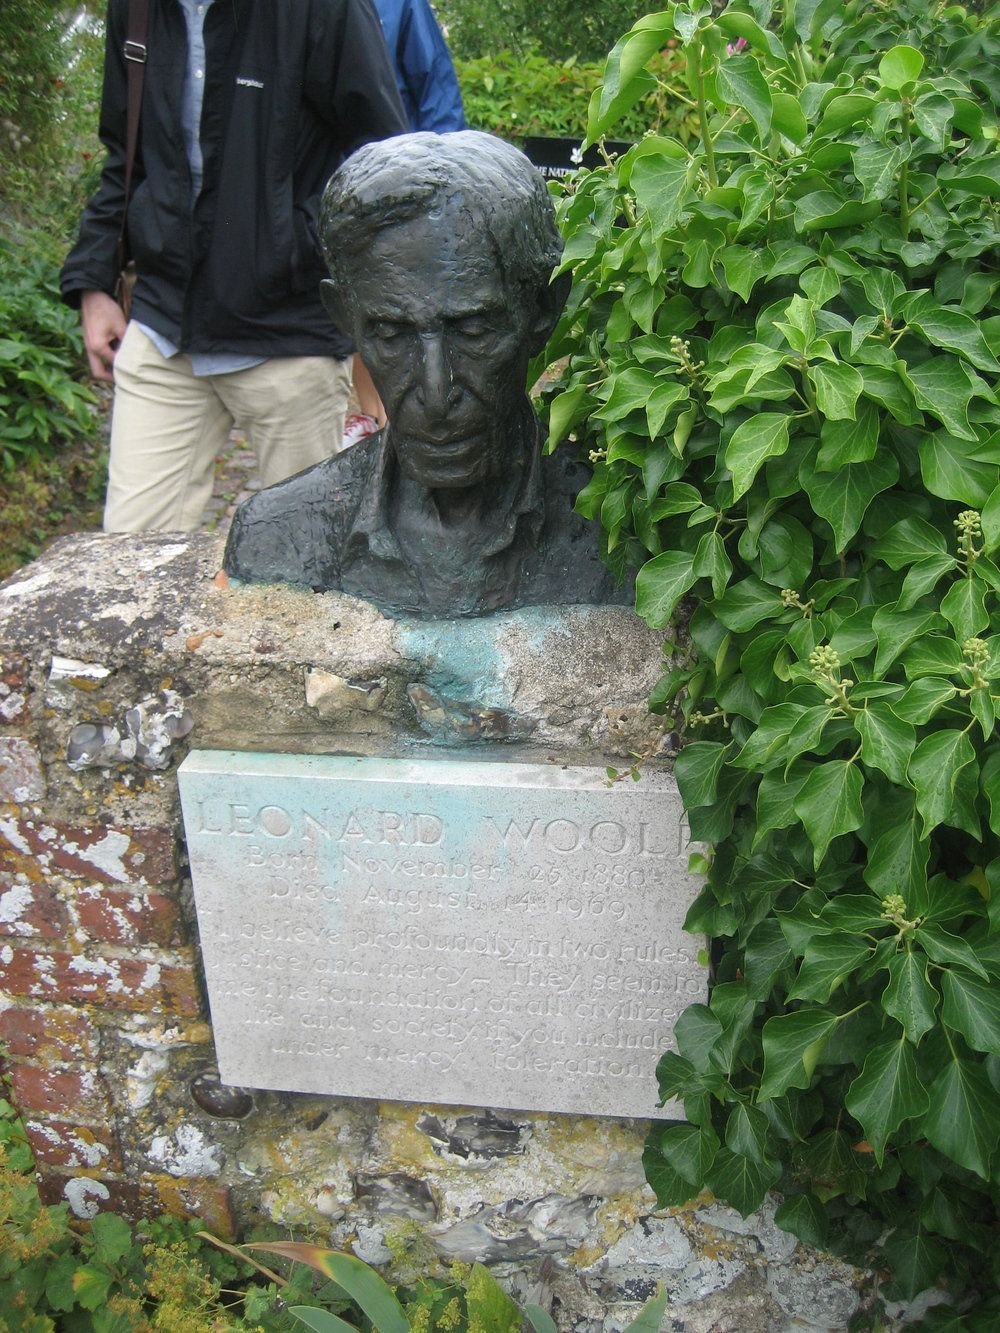 Leonard Woolf in the garden